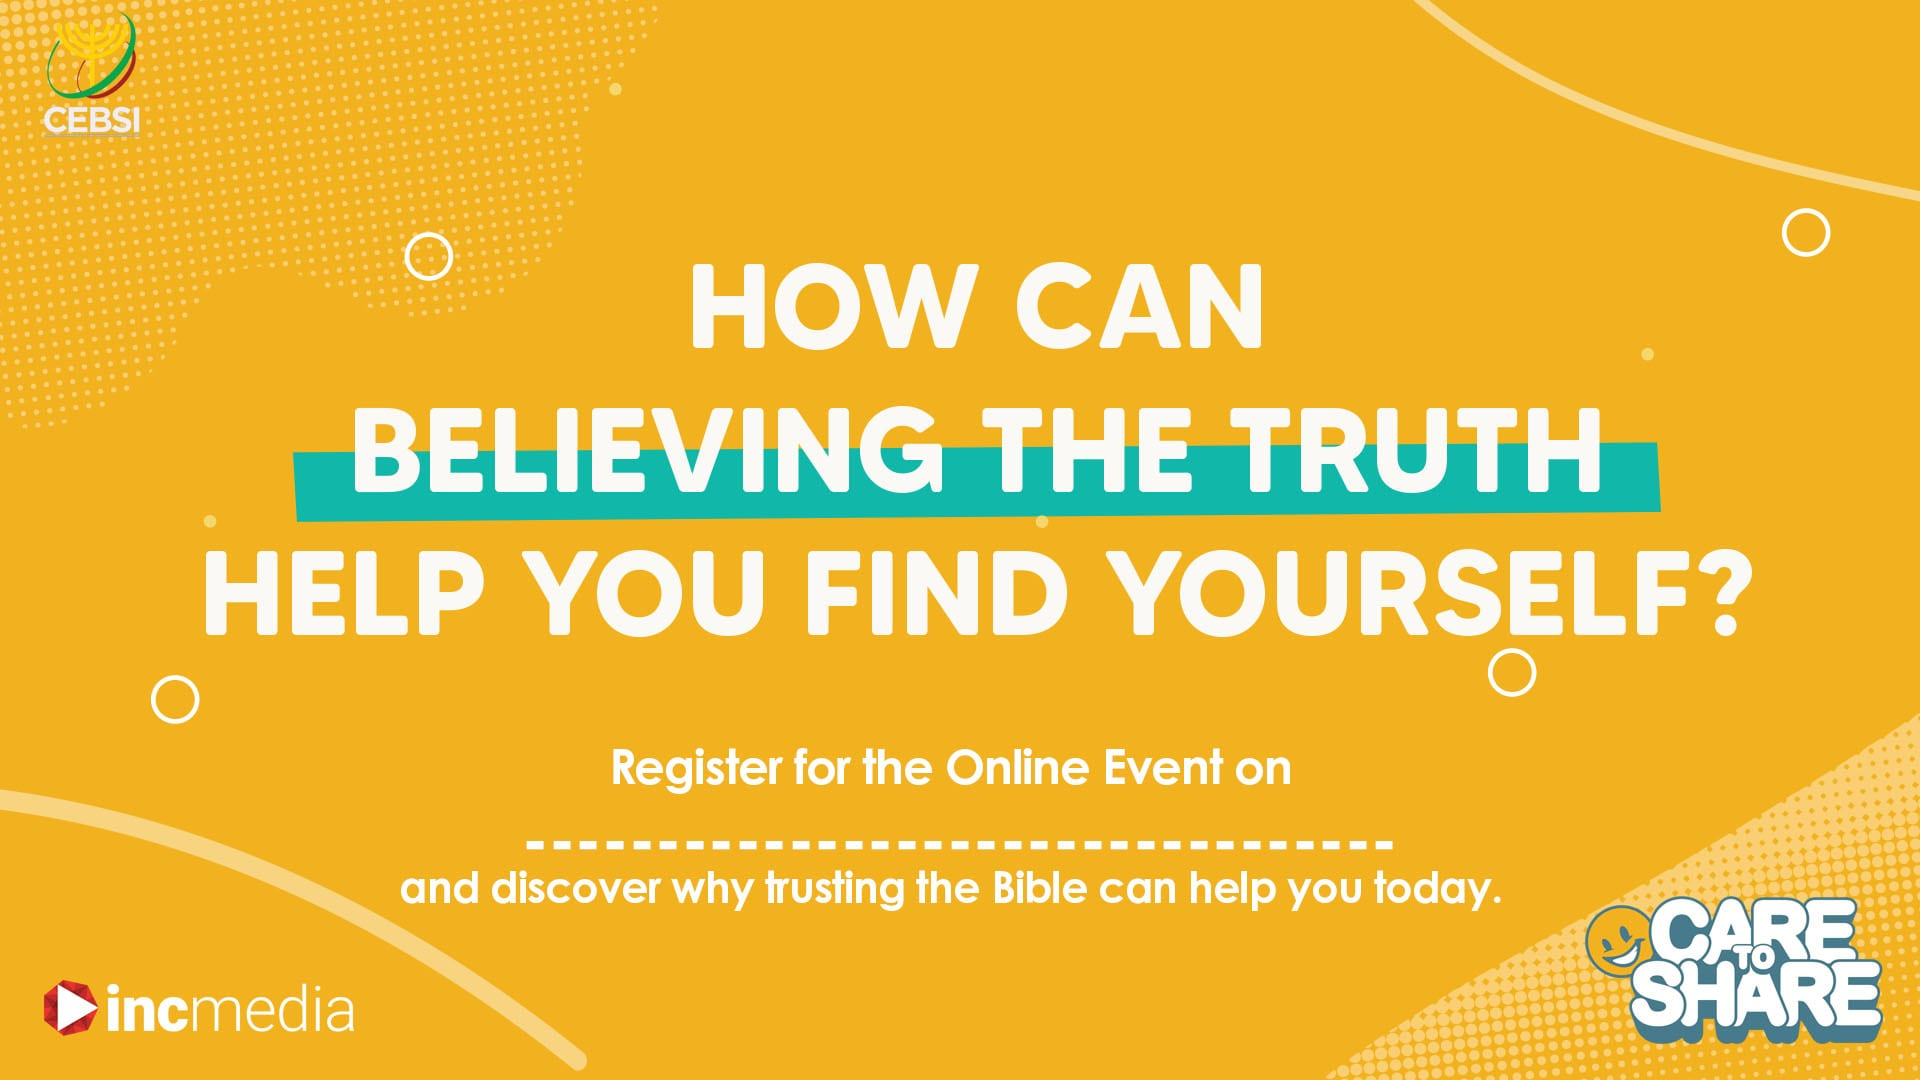 C2S-FB-HOW-CAN-BELIEVING-THE-TRUTH